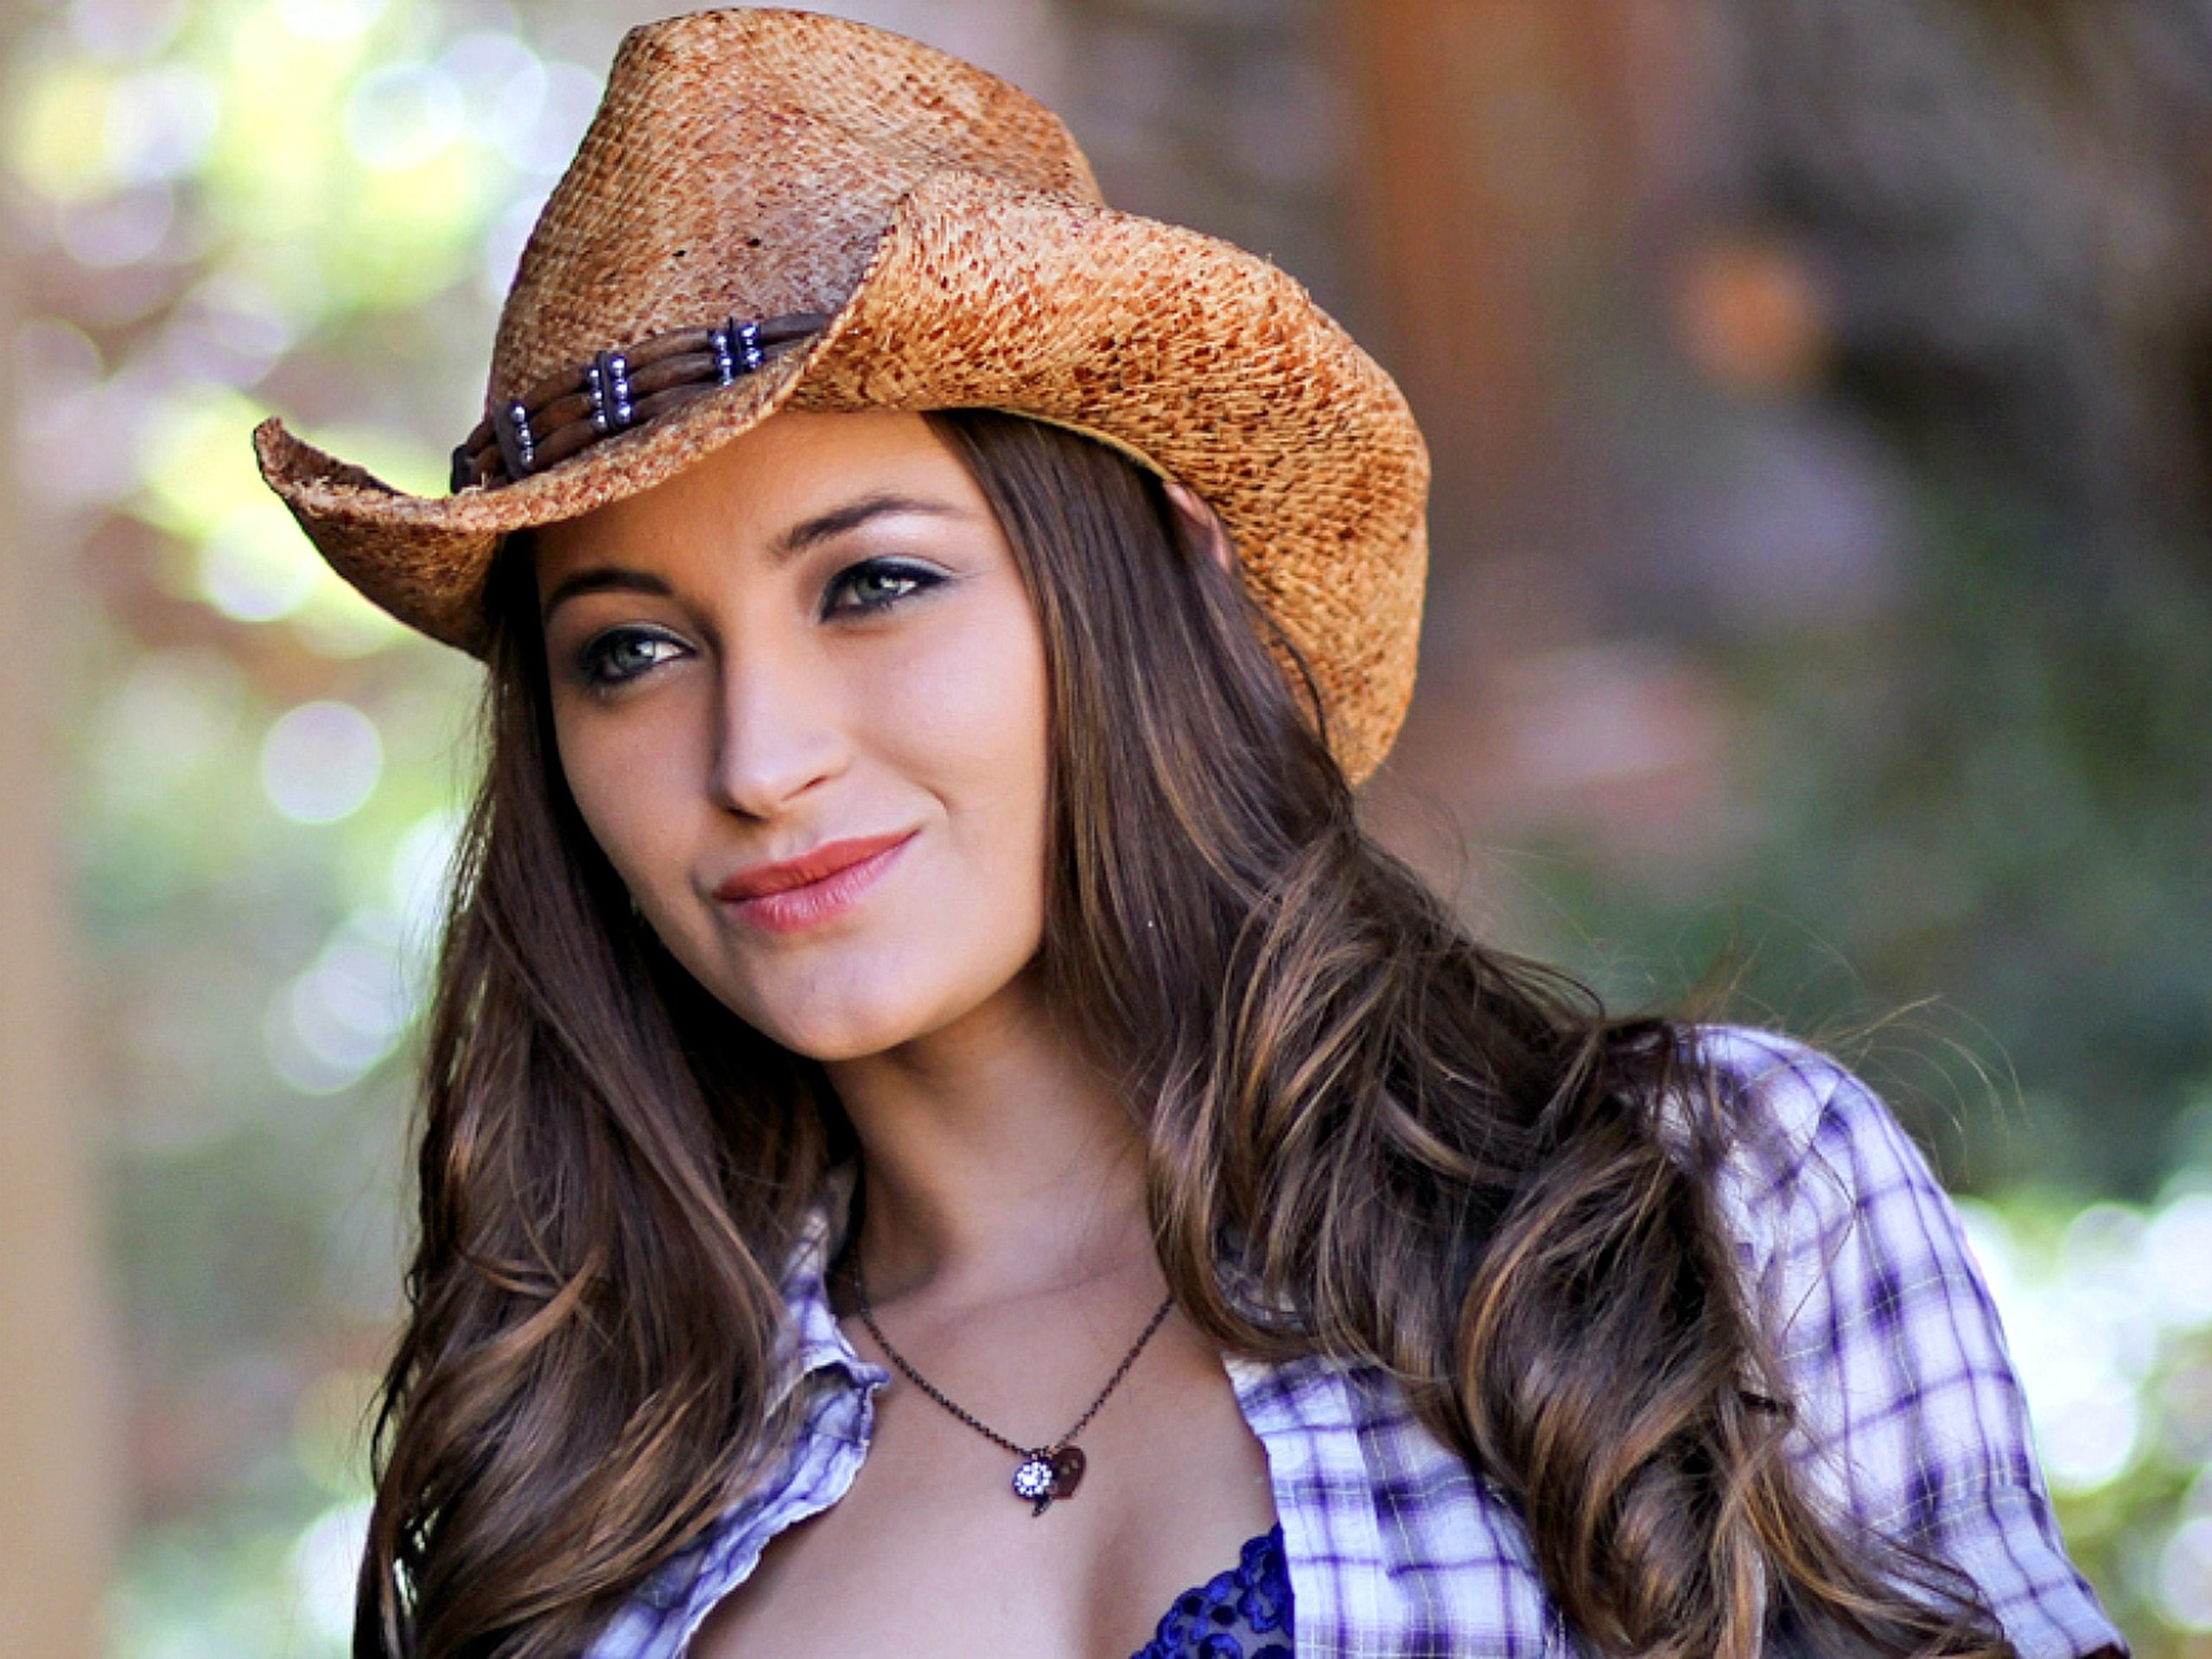 Res: 2560x1920, Cowgirl Cowboy hat Brunette Model wallpaper |  | 479581 |  WallpaperUP